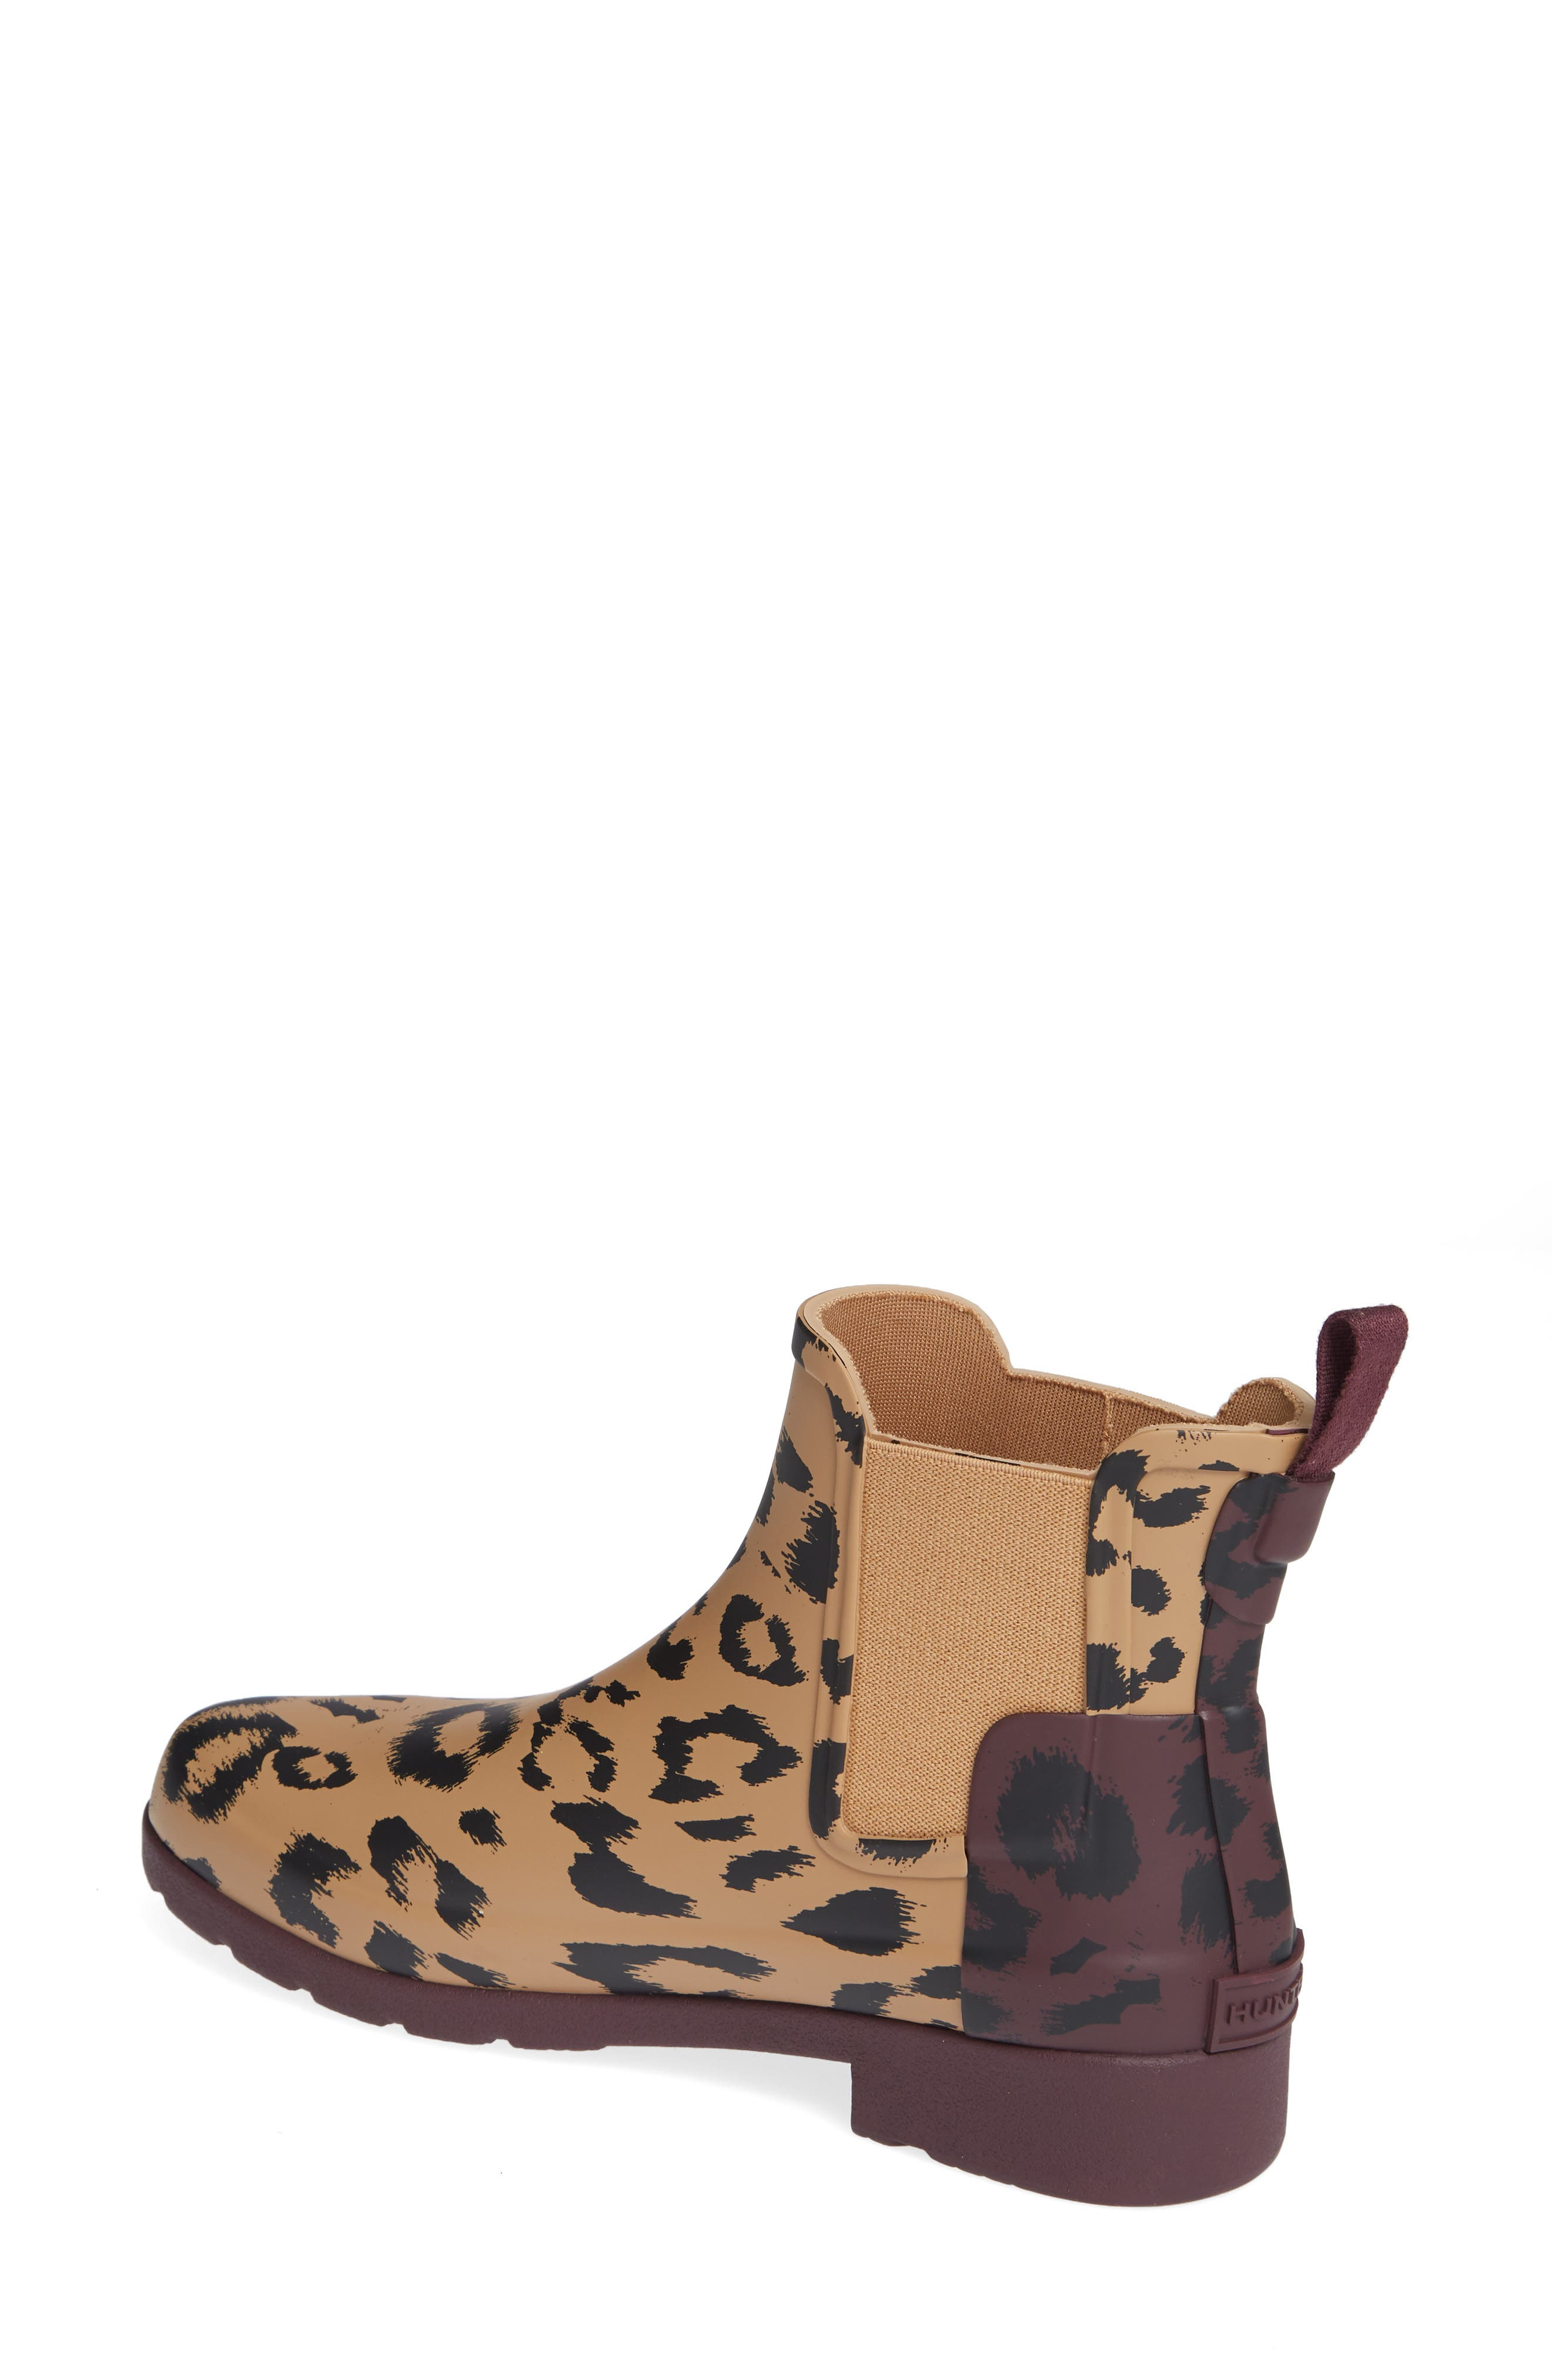 HUNTER,                             Original Leopard Print Refined Chelsea Waterproof Rain Boot,                             Alternate thumbnail 2, color,                             242